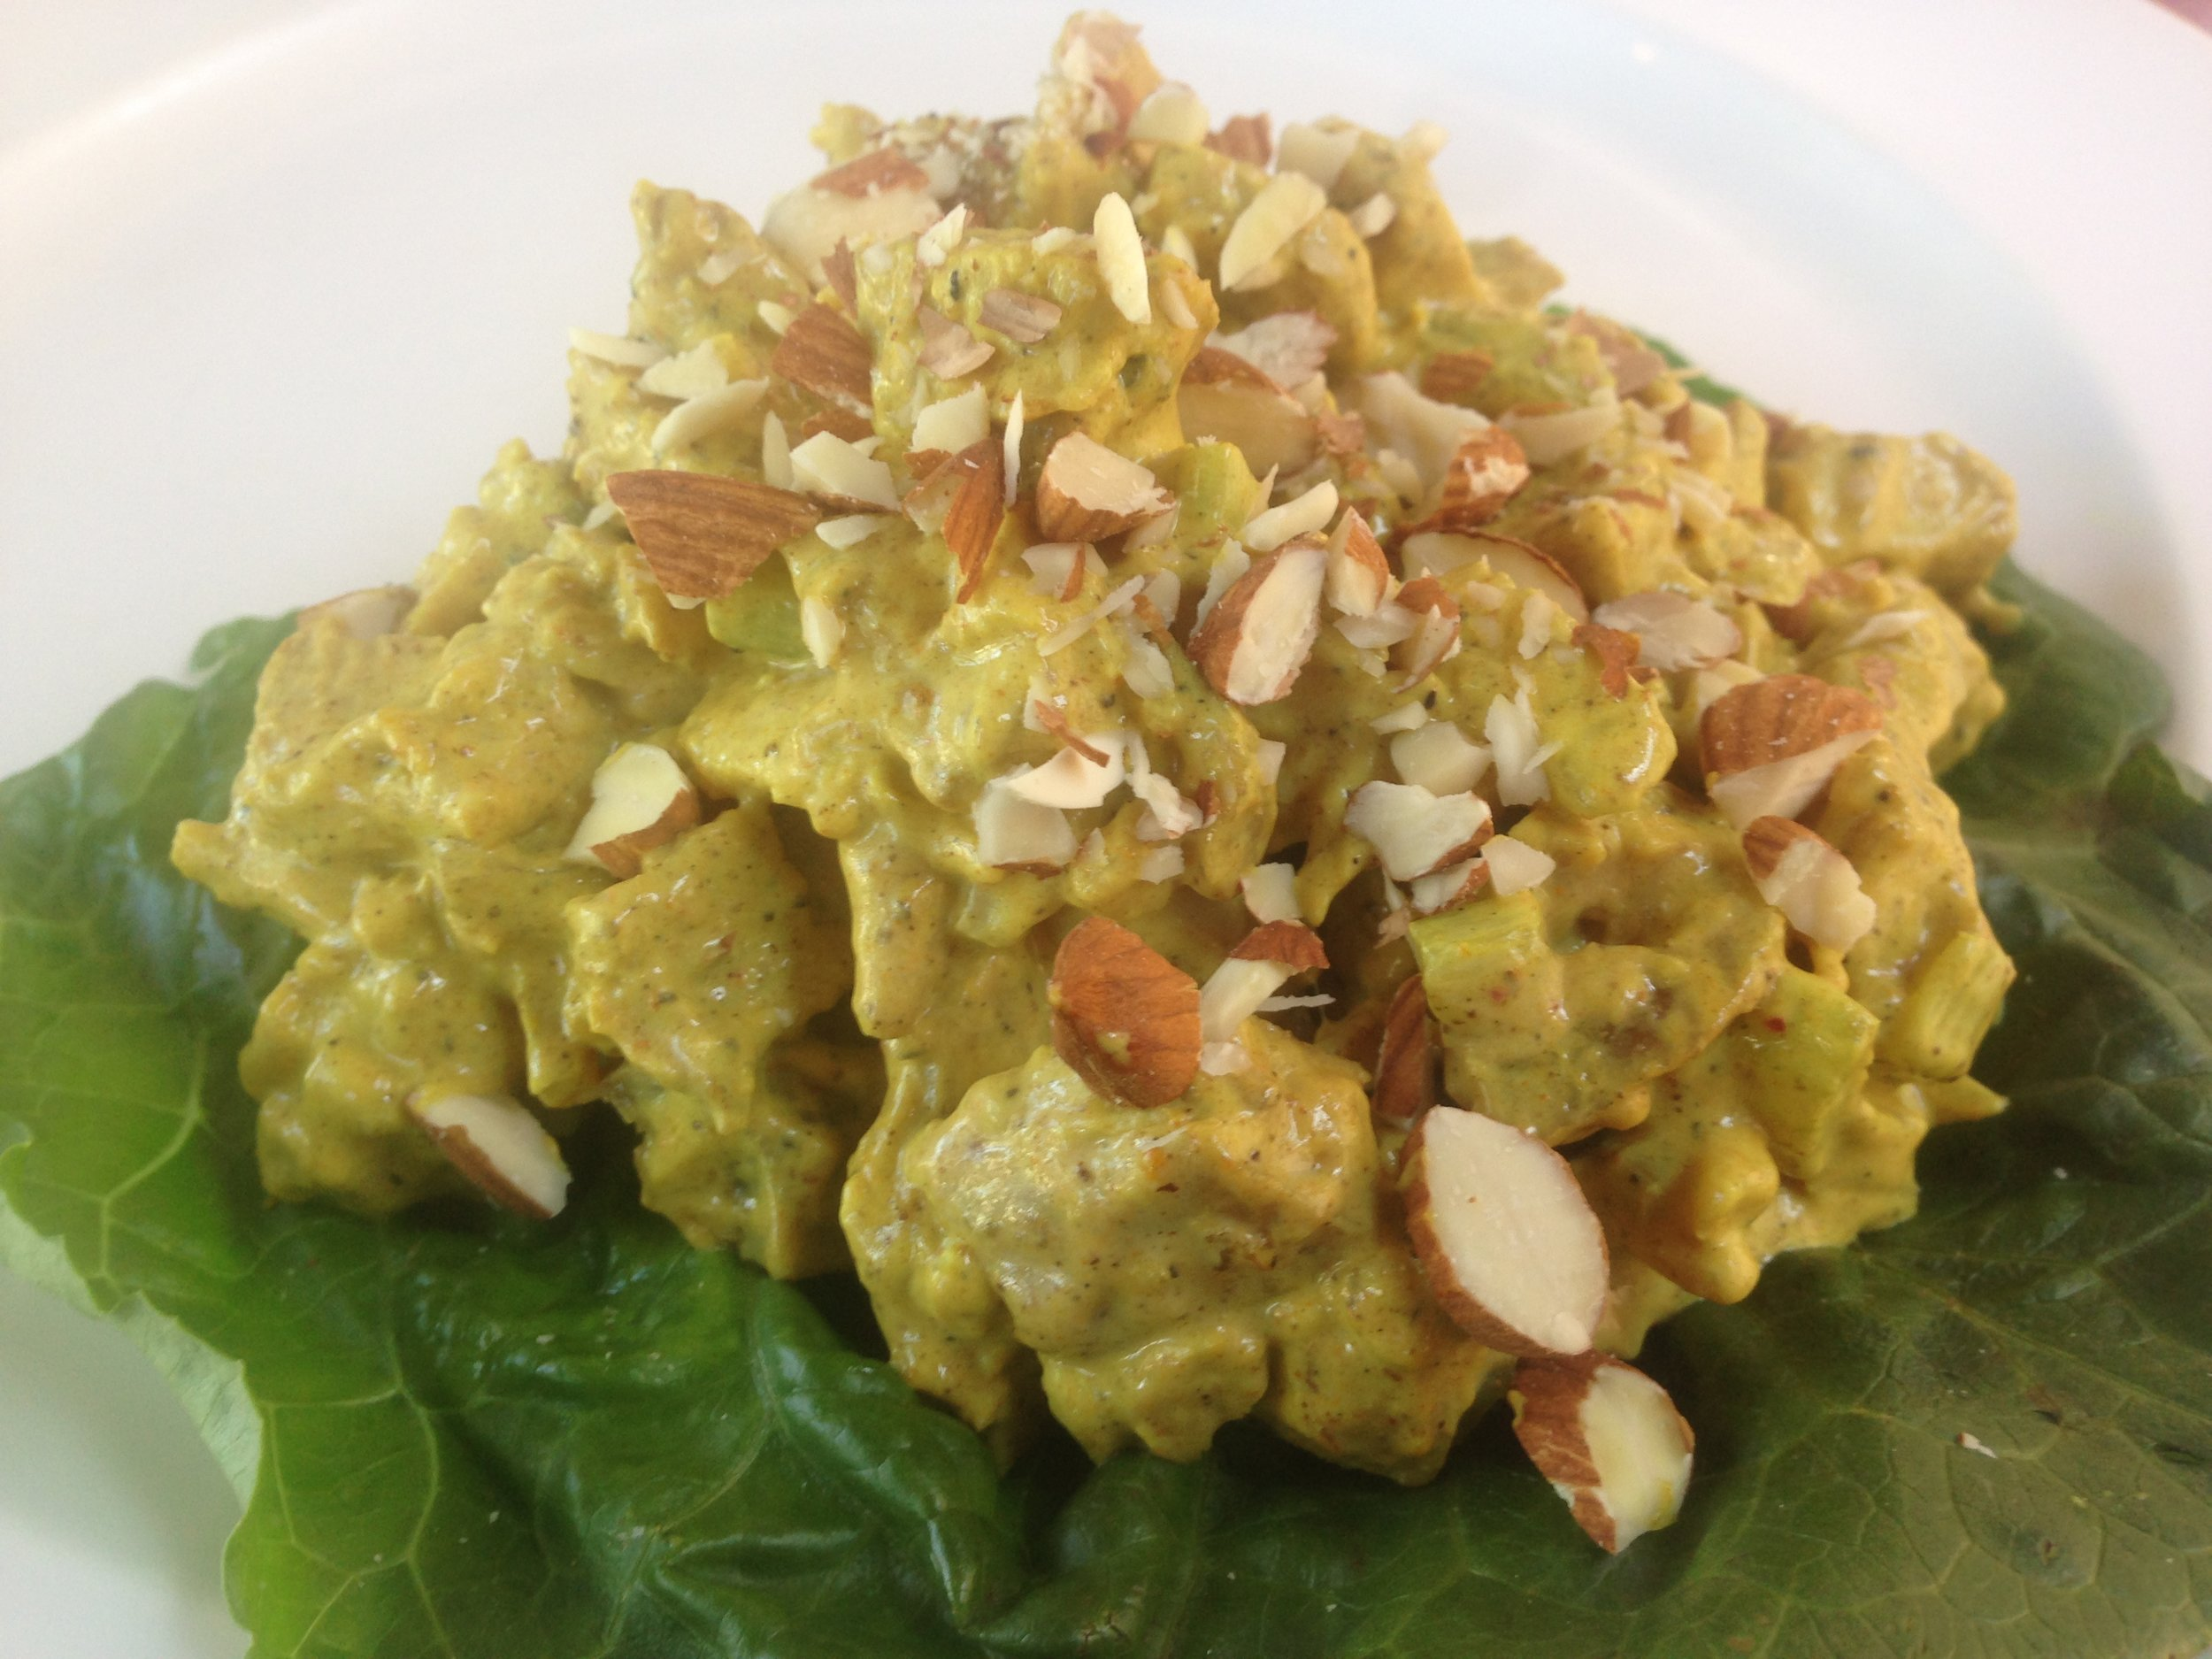 Curry Chicken Salad with almonds over the top. Served and ready to dig in.